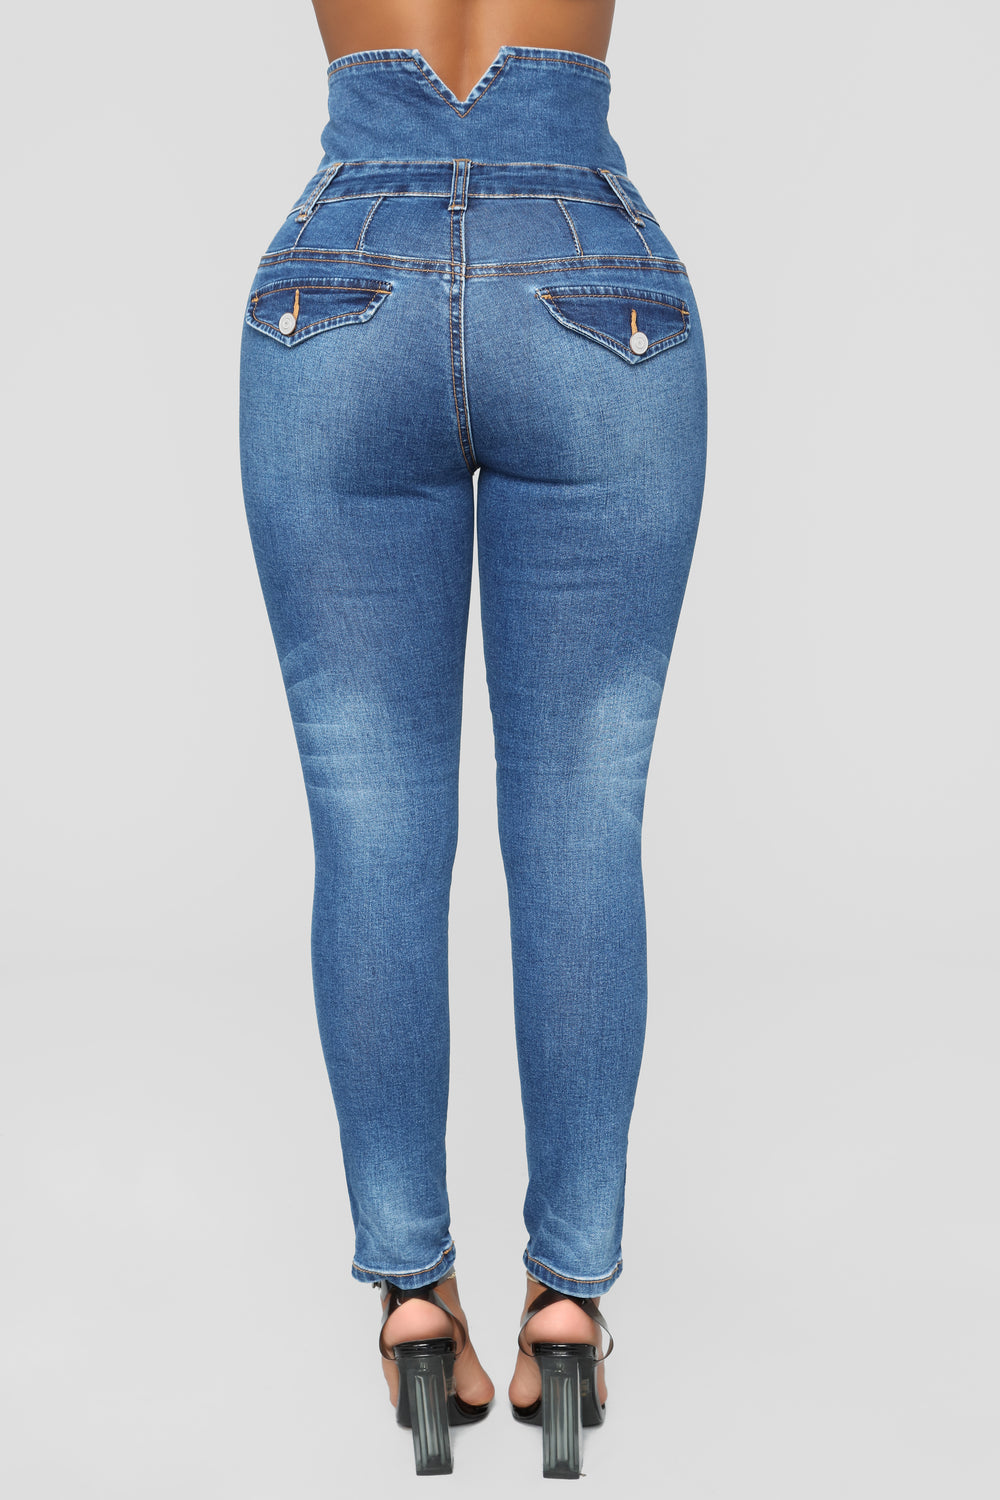 Stacks On Stacks Ankle Jeans - Dark Denim